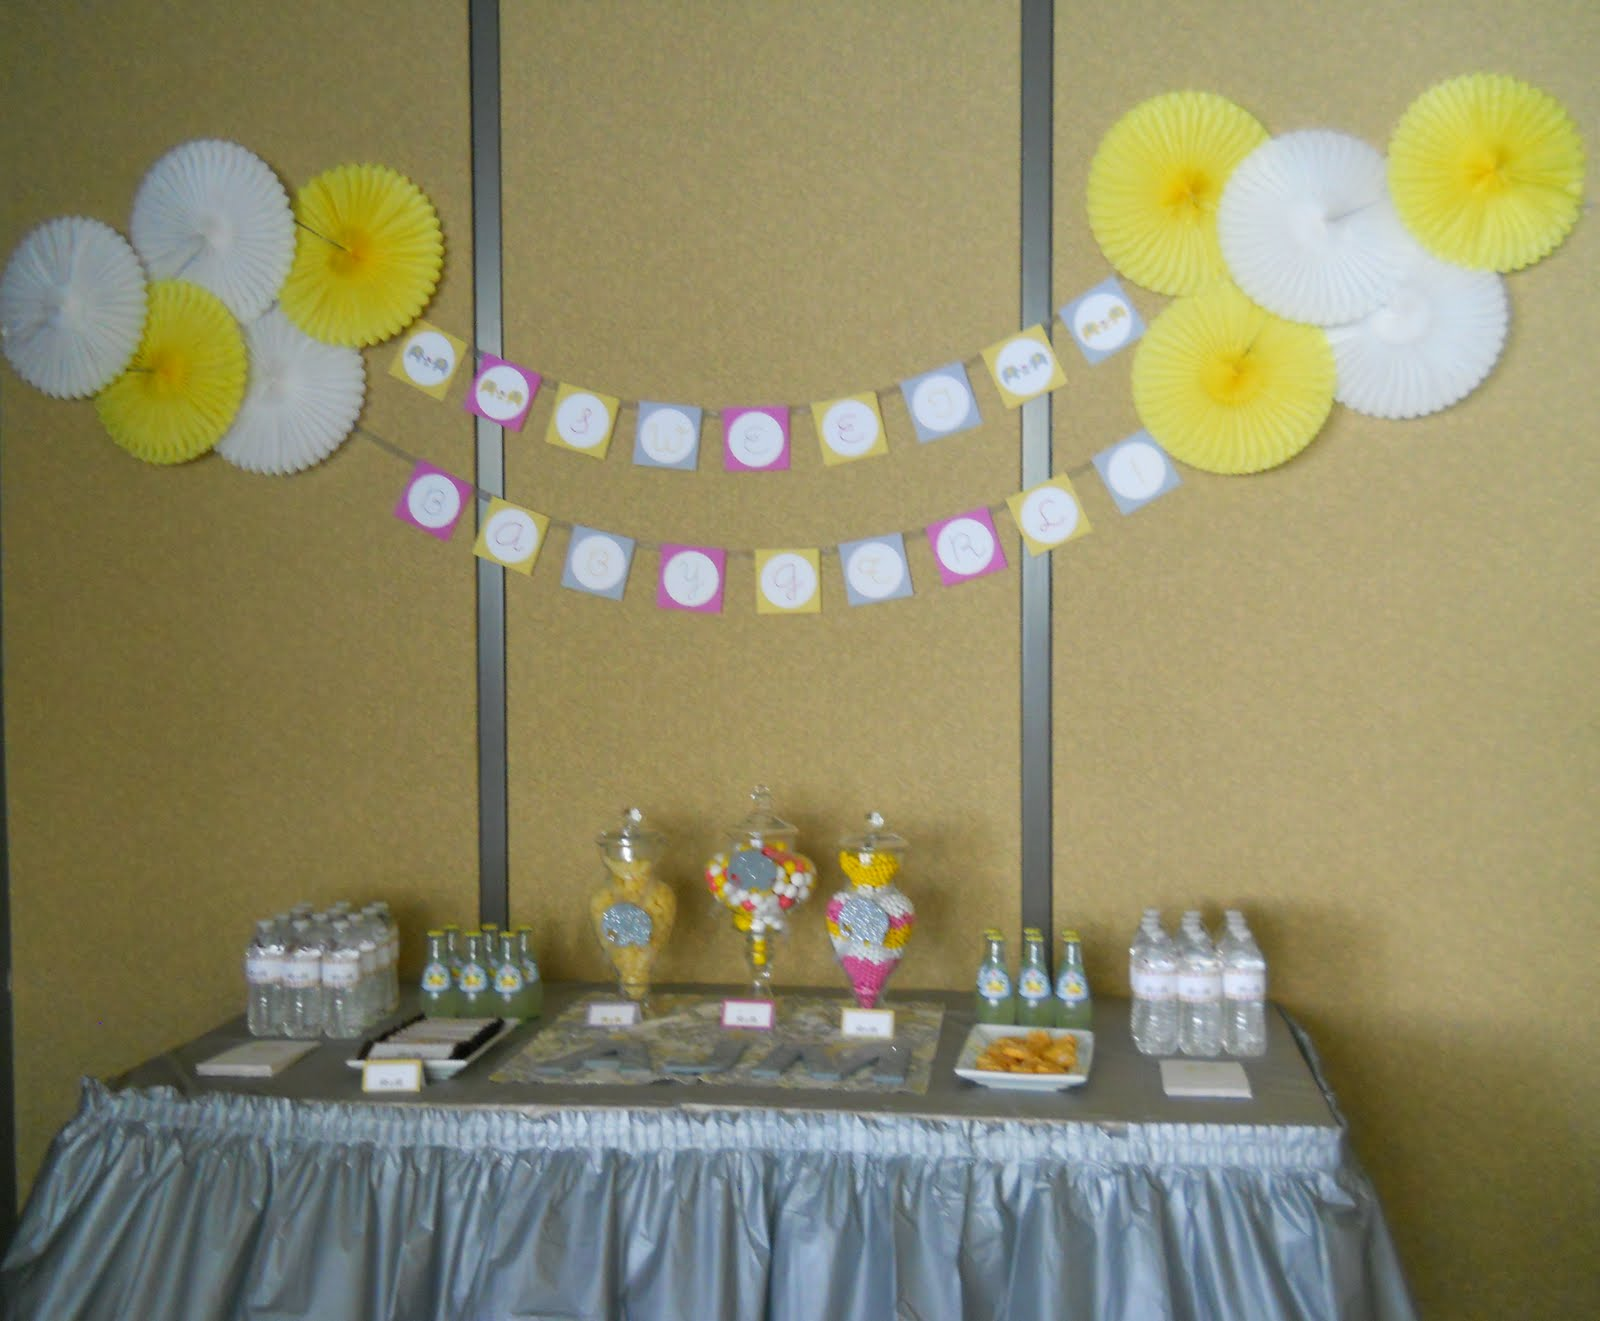 Baby shower decoration ideas interior home design - Decoration baby shower ...